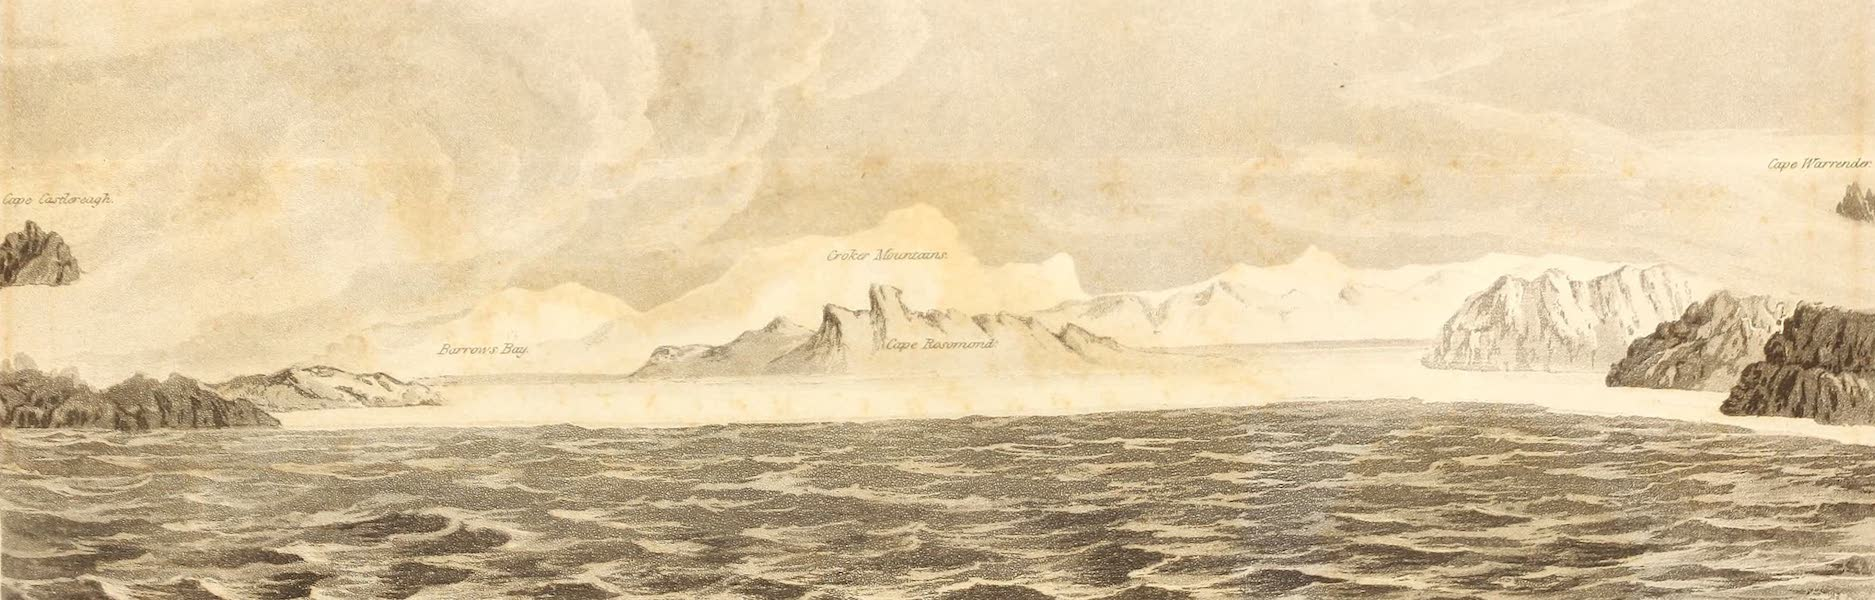 A Voyage of Discovery - Lancaster Sound, as seen from H.M.S. Isabella (1819)